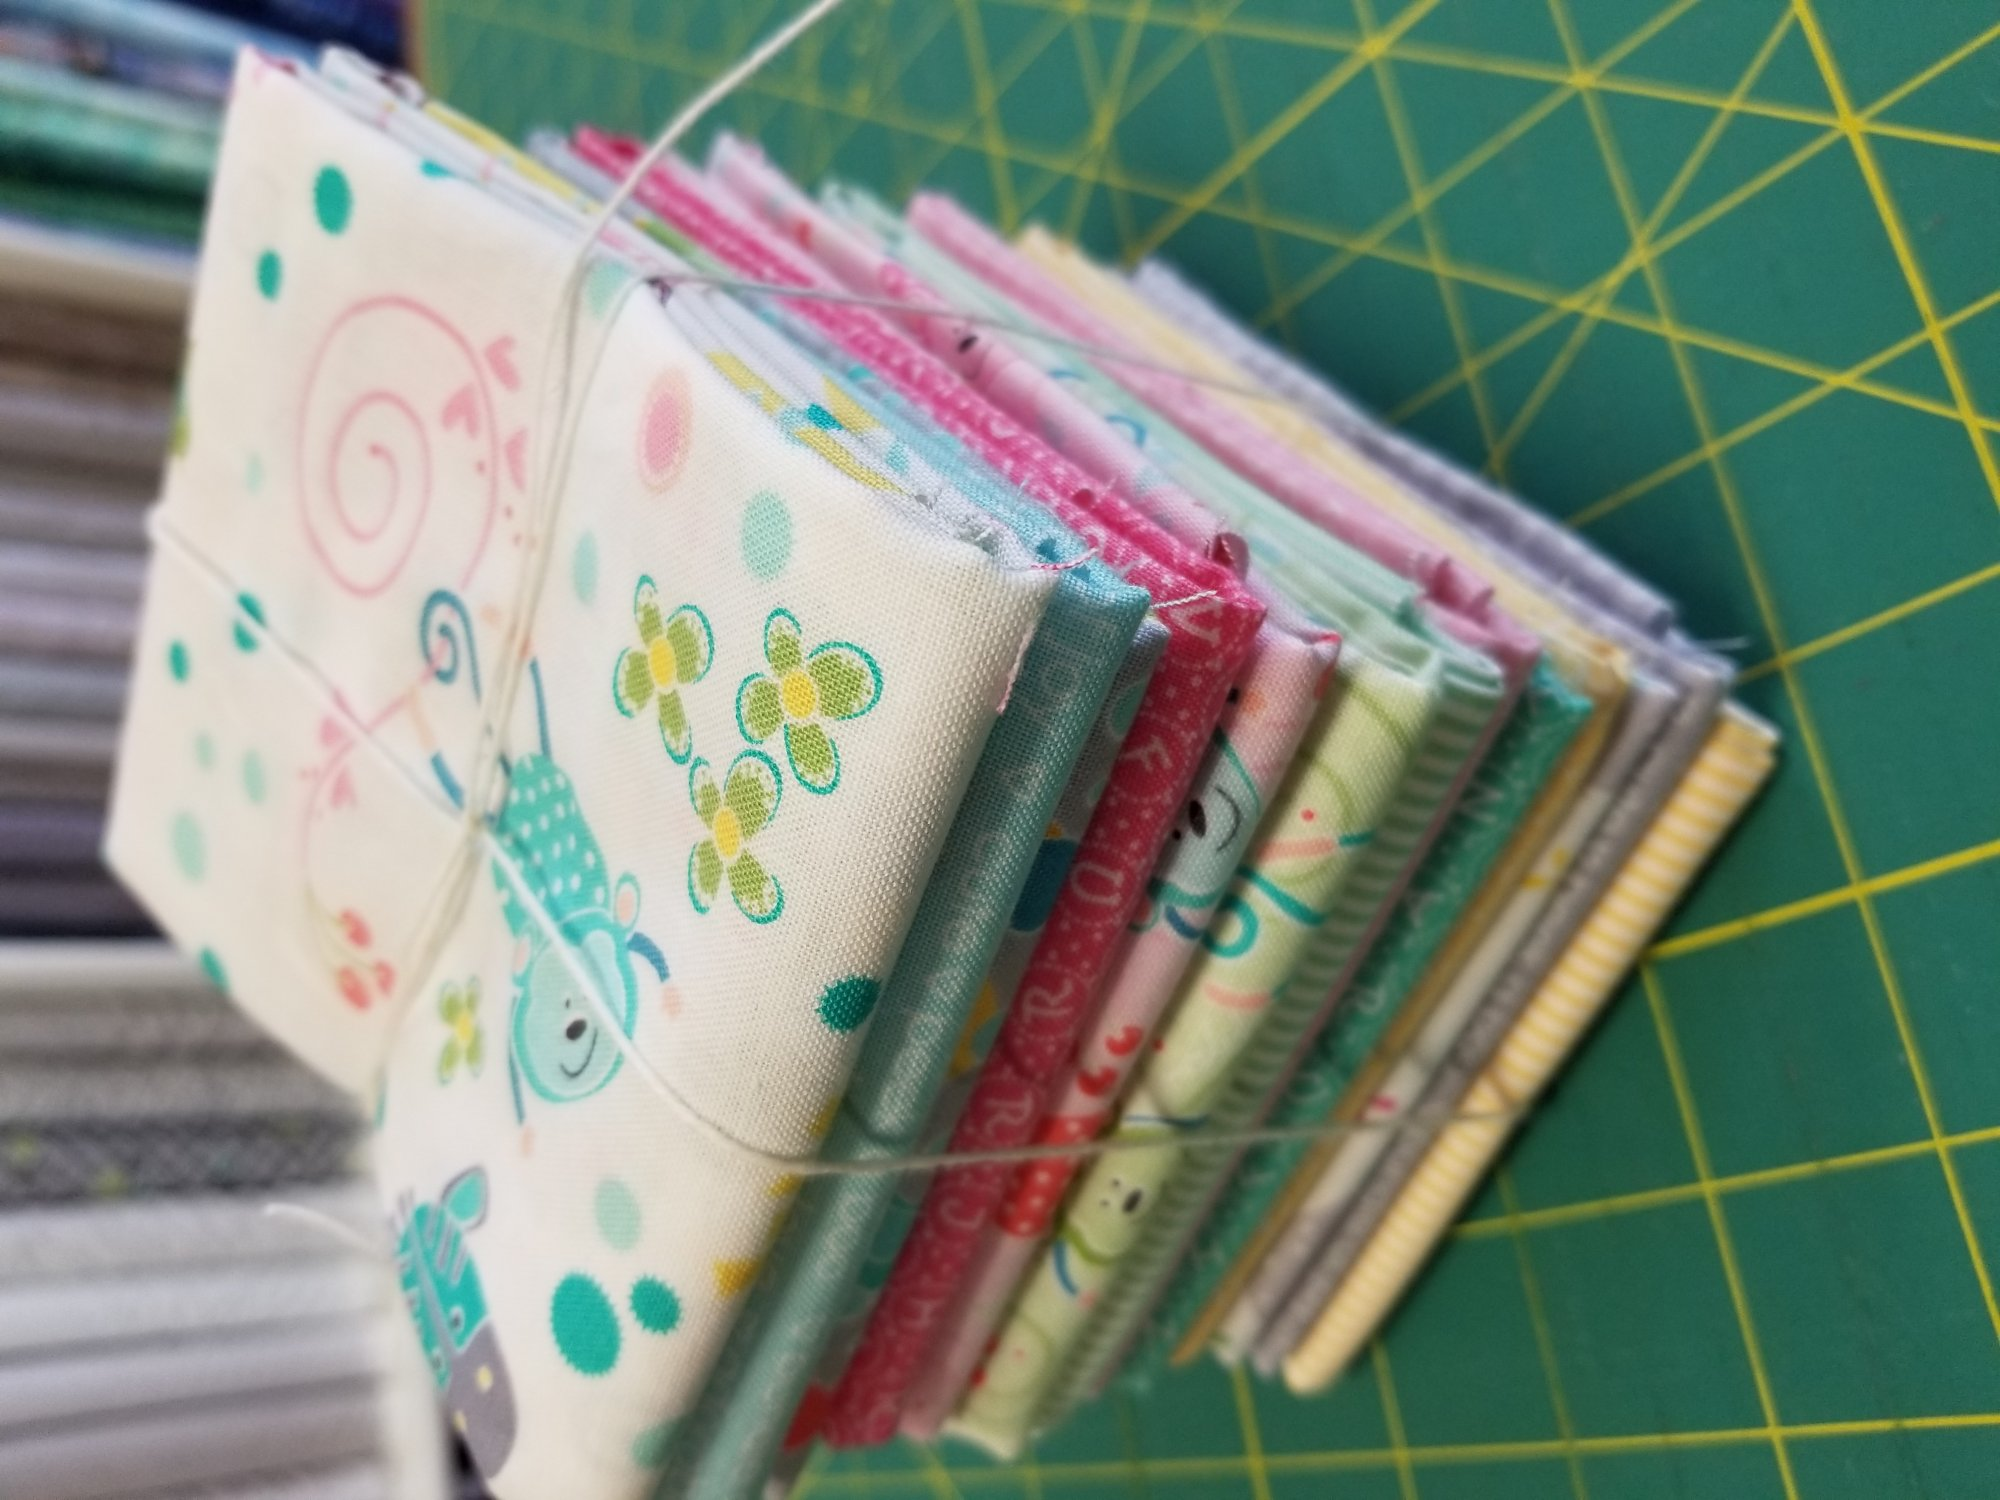 Baker's Dozen Fat Quarters